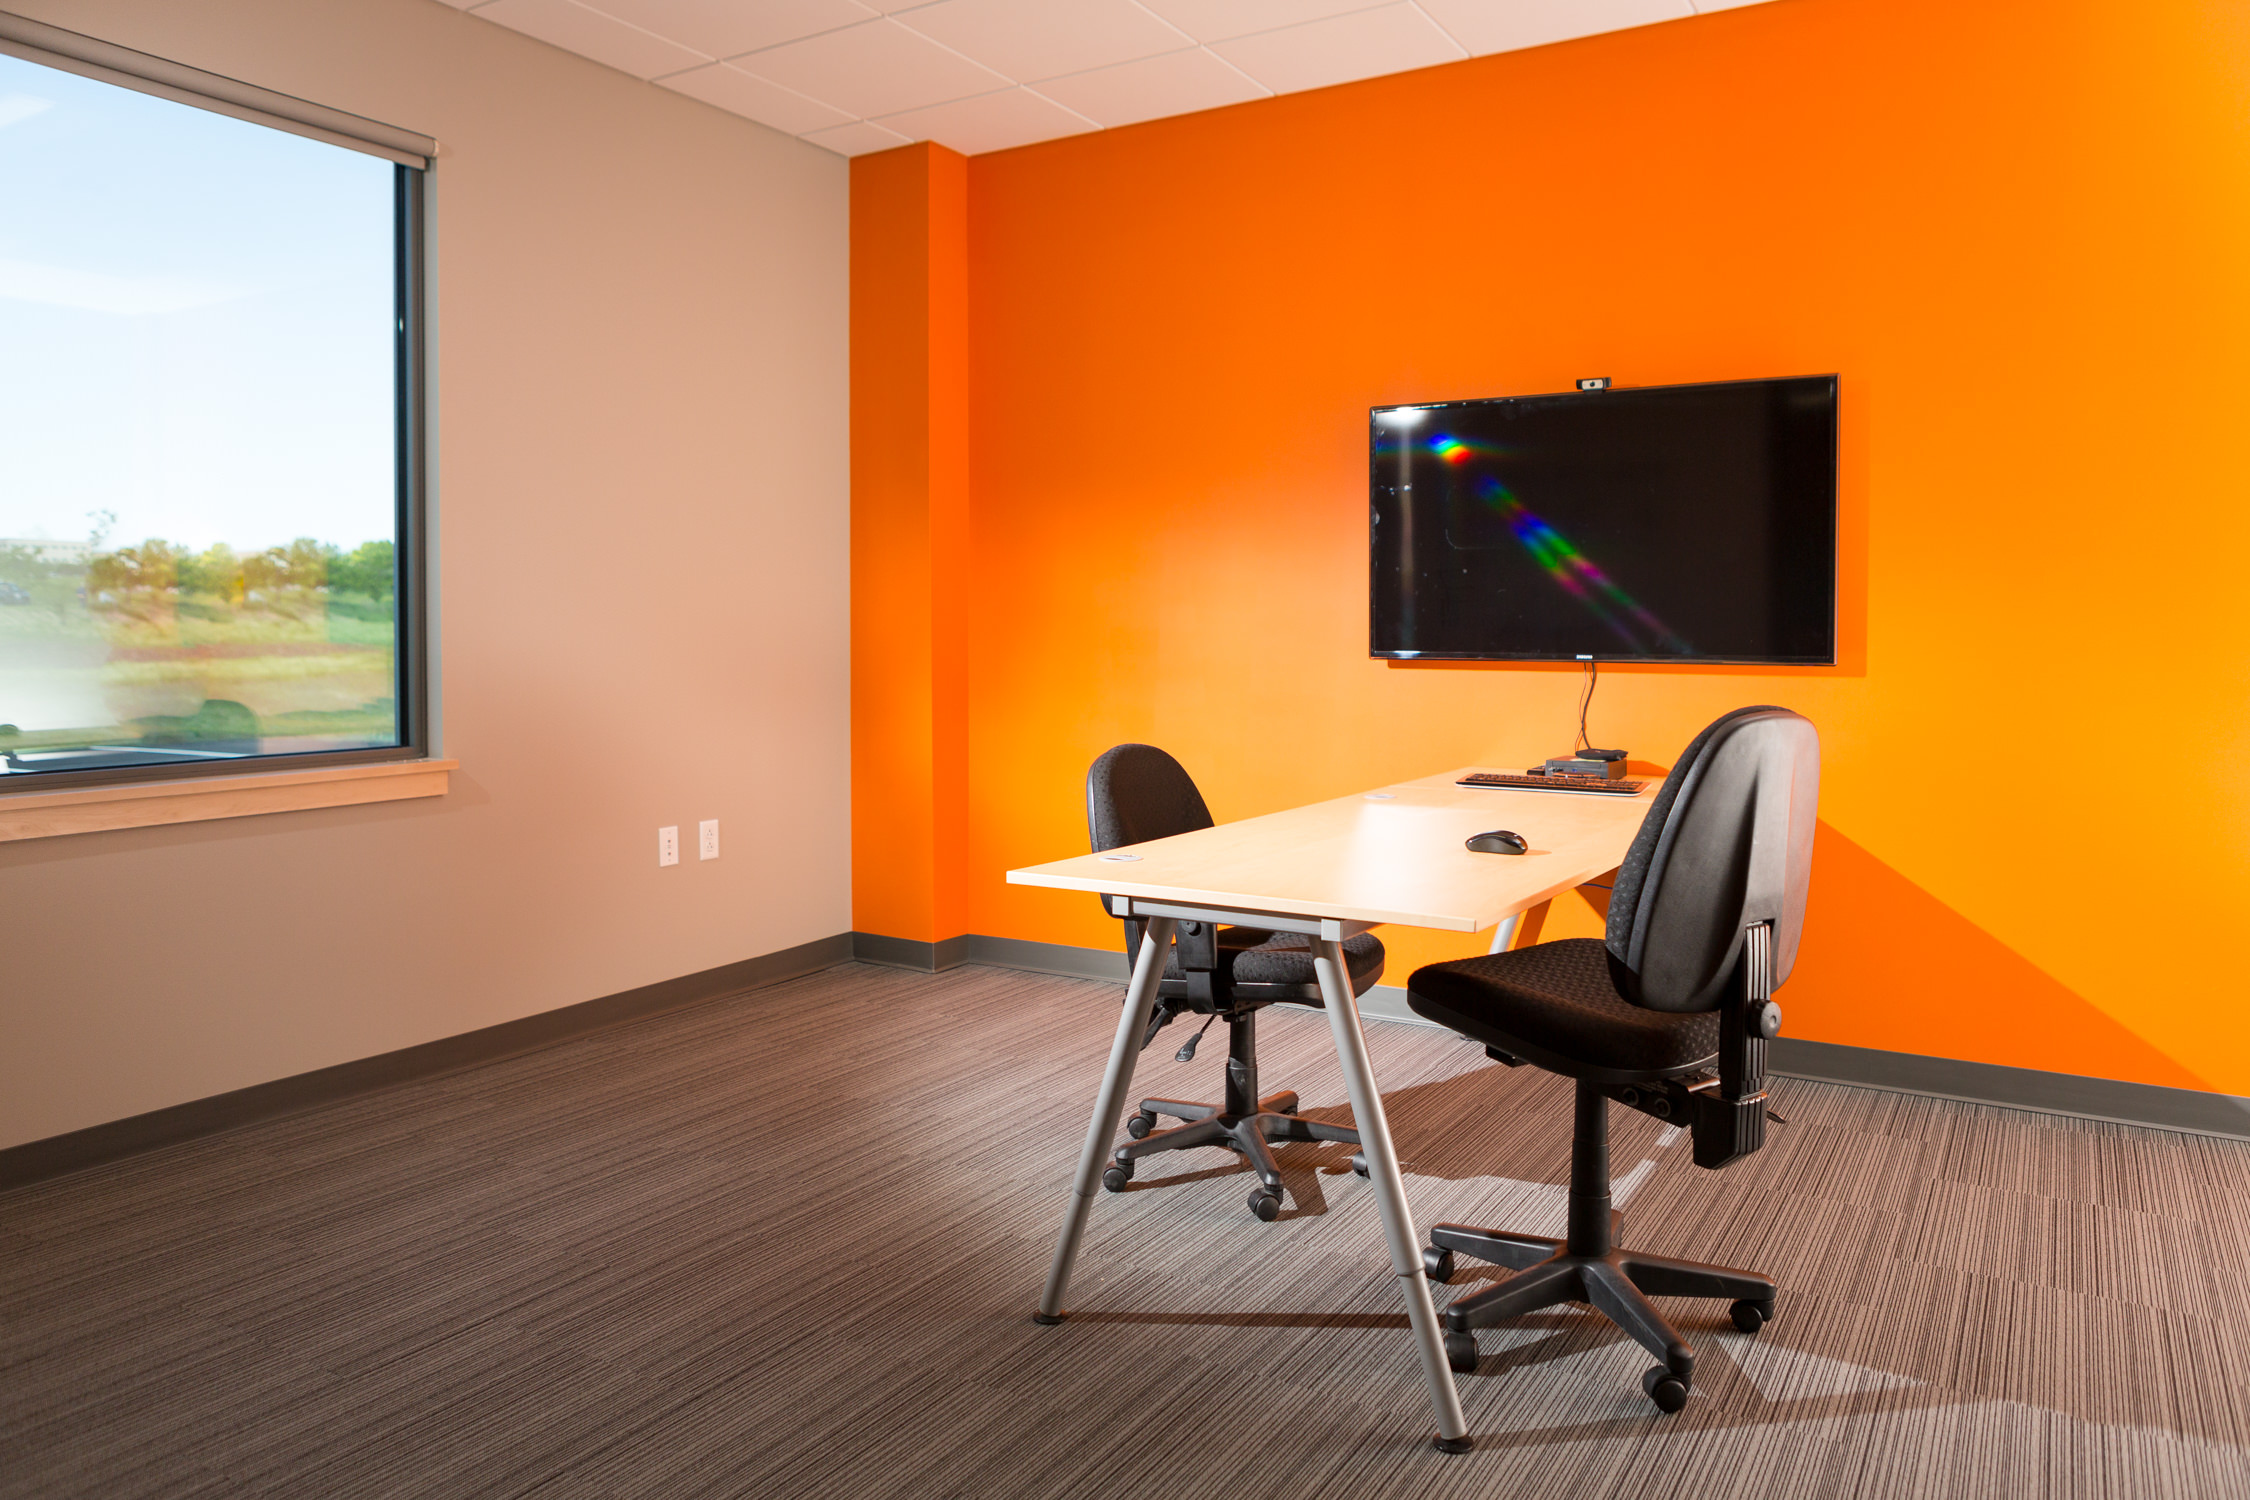 Photo of a small meeting room in the Logic Supply building addition for Neagley & Chase Construction Company by Vermont architecture photographer Stina Booth of Studio SB.